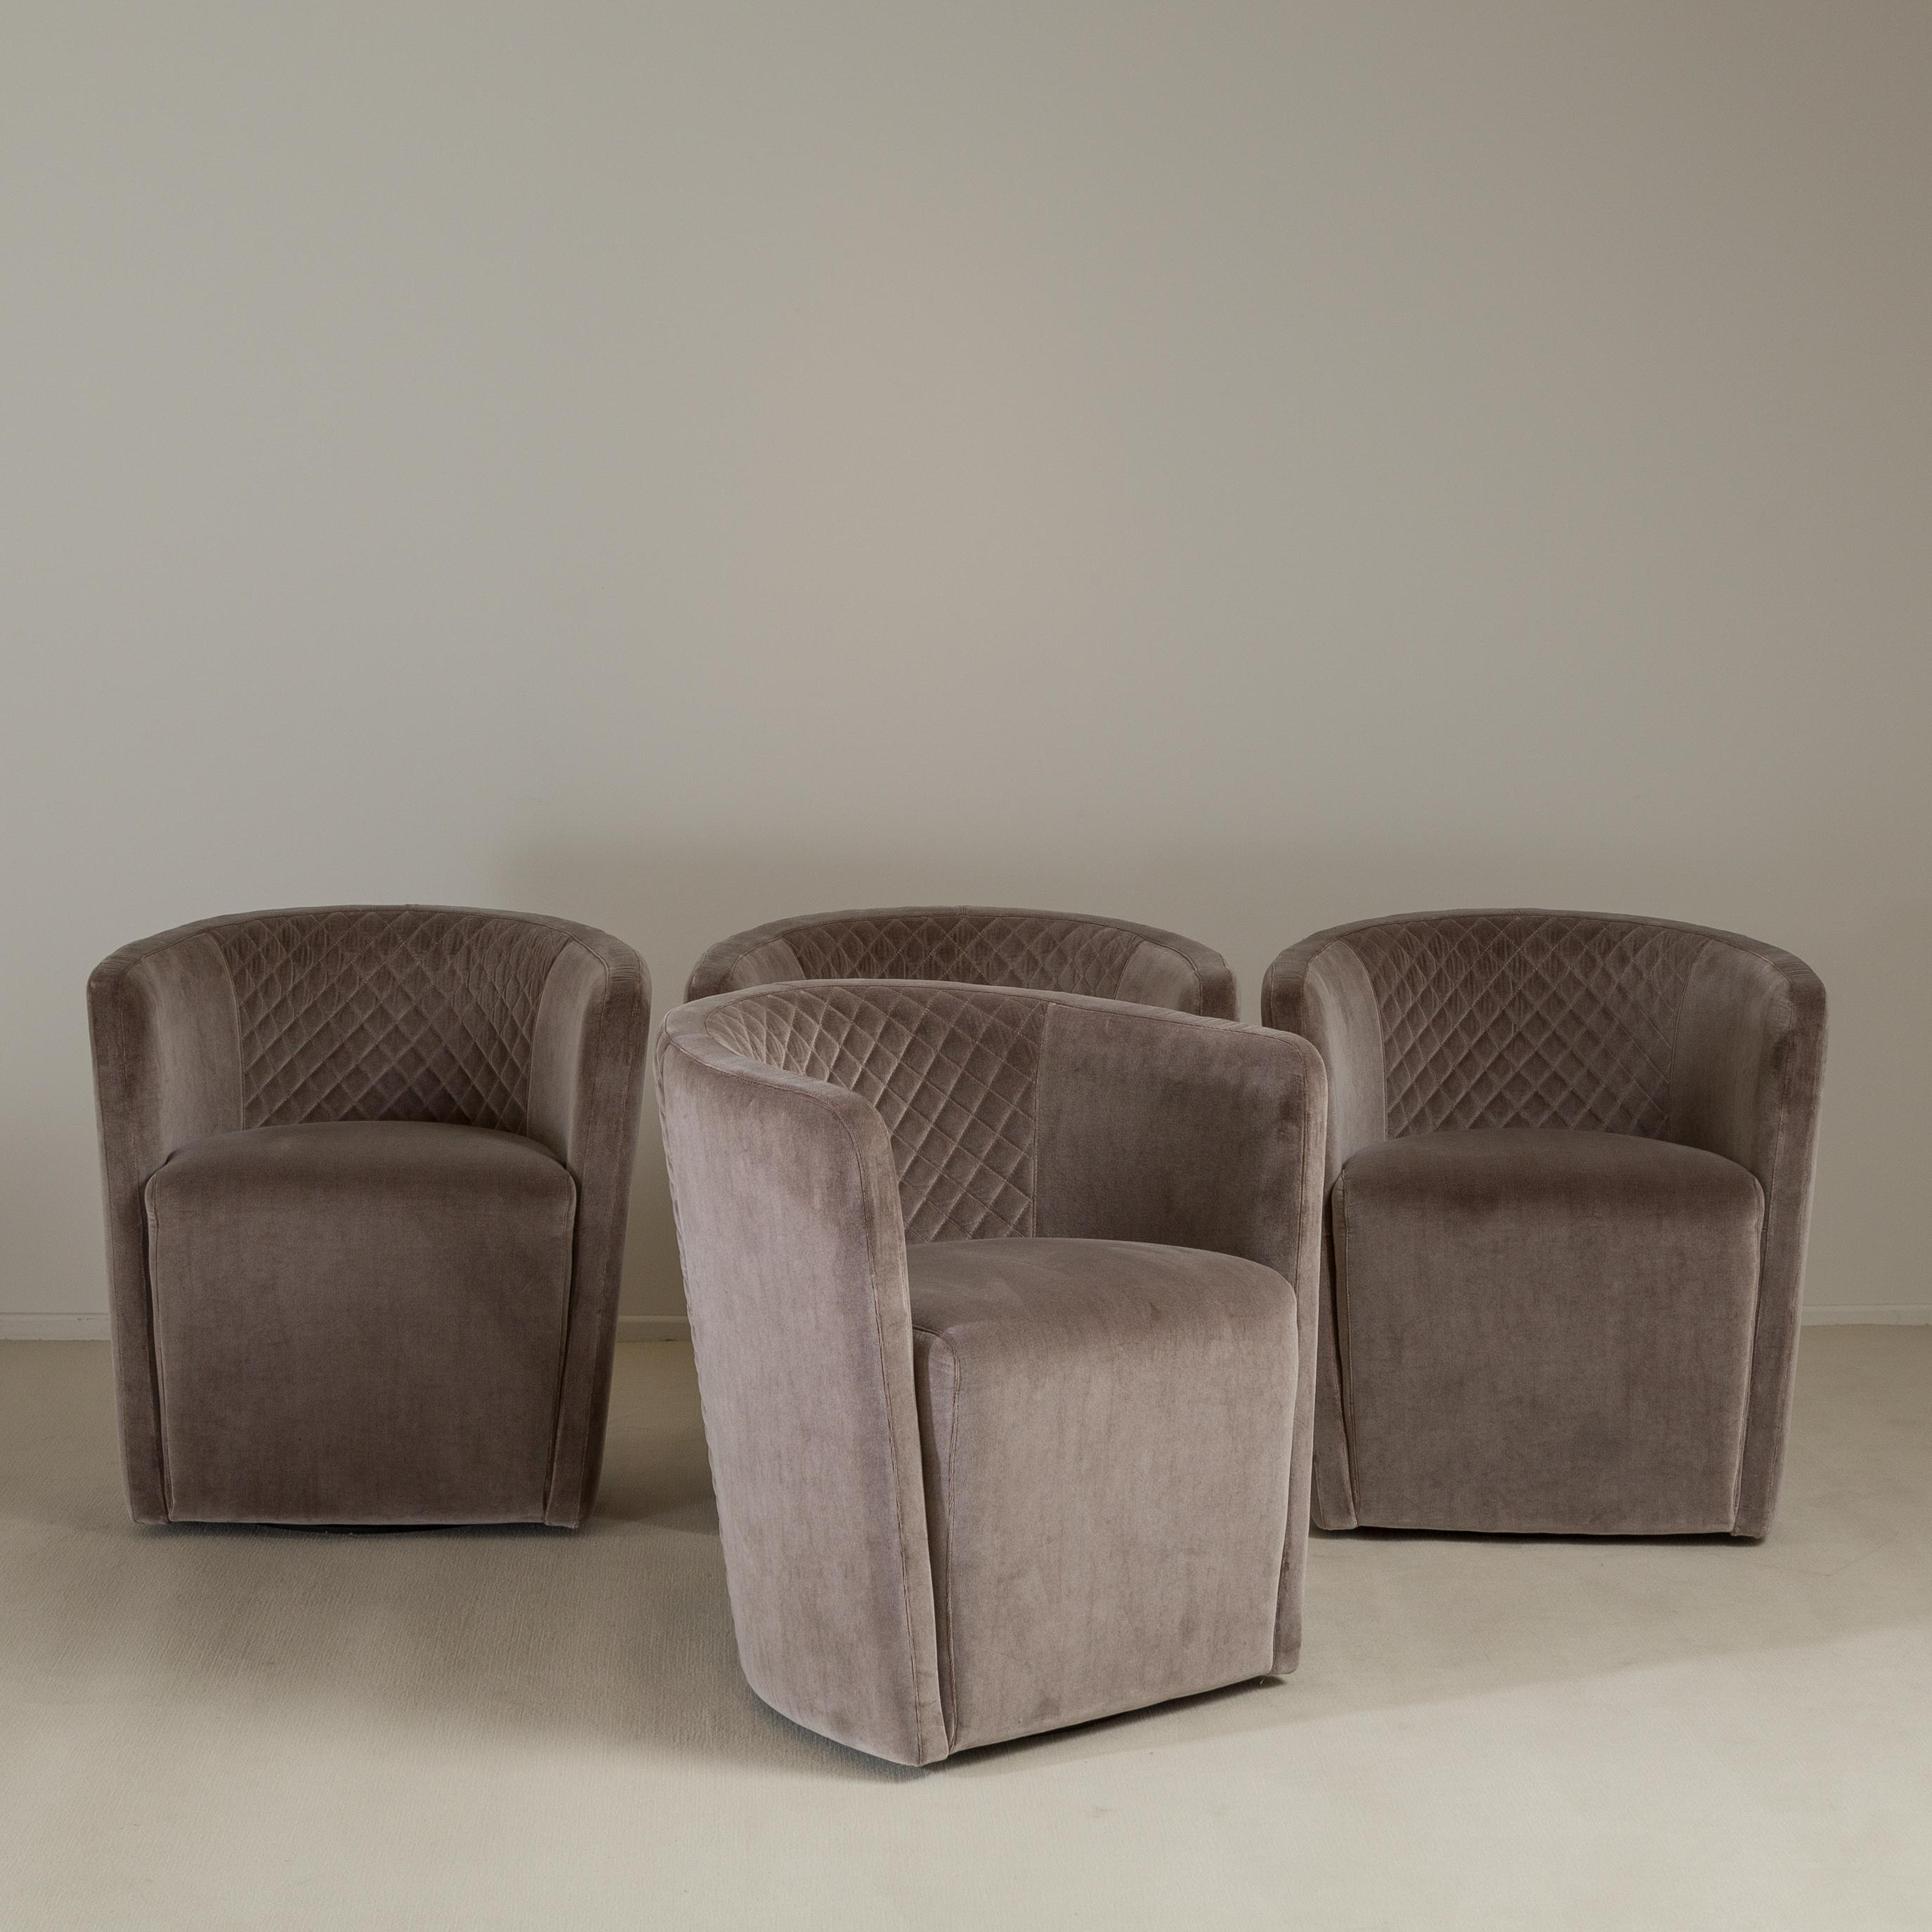 quilted swivel chair game chairs target lovely a set of four contemporary italian tub six upholstered available in pairs nb